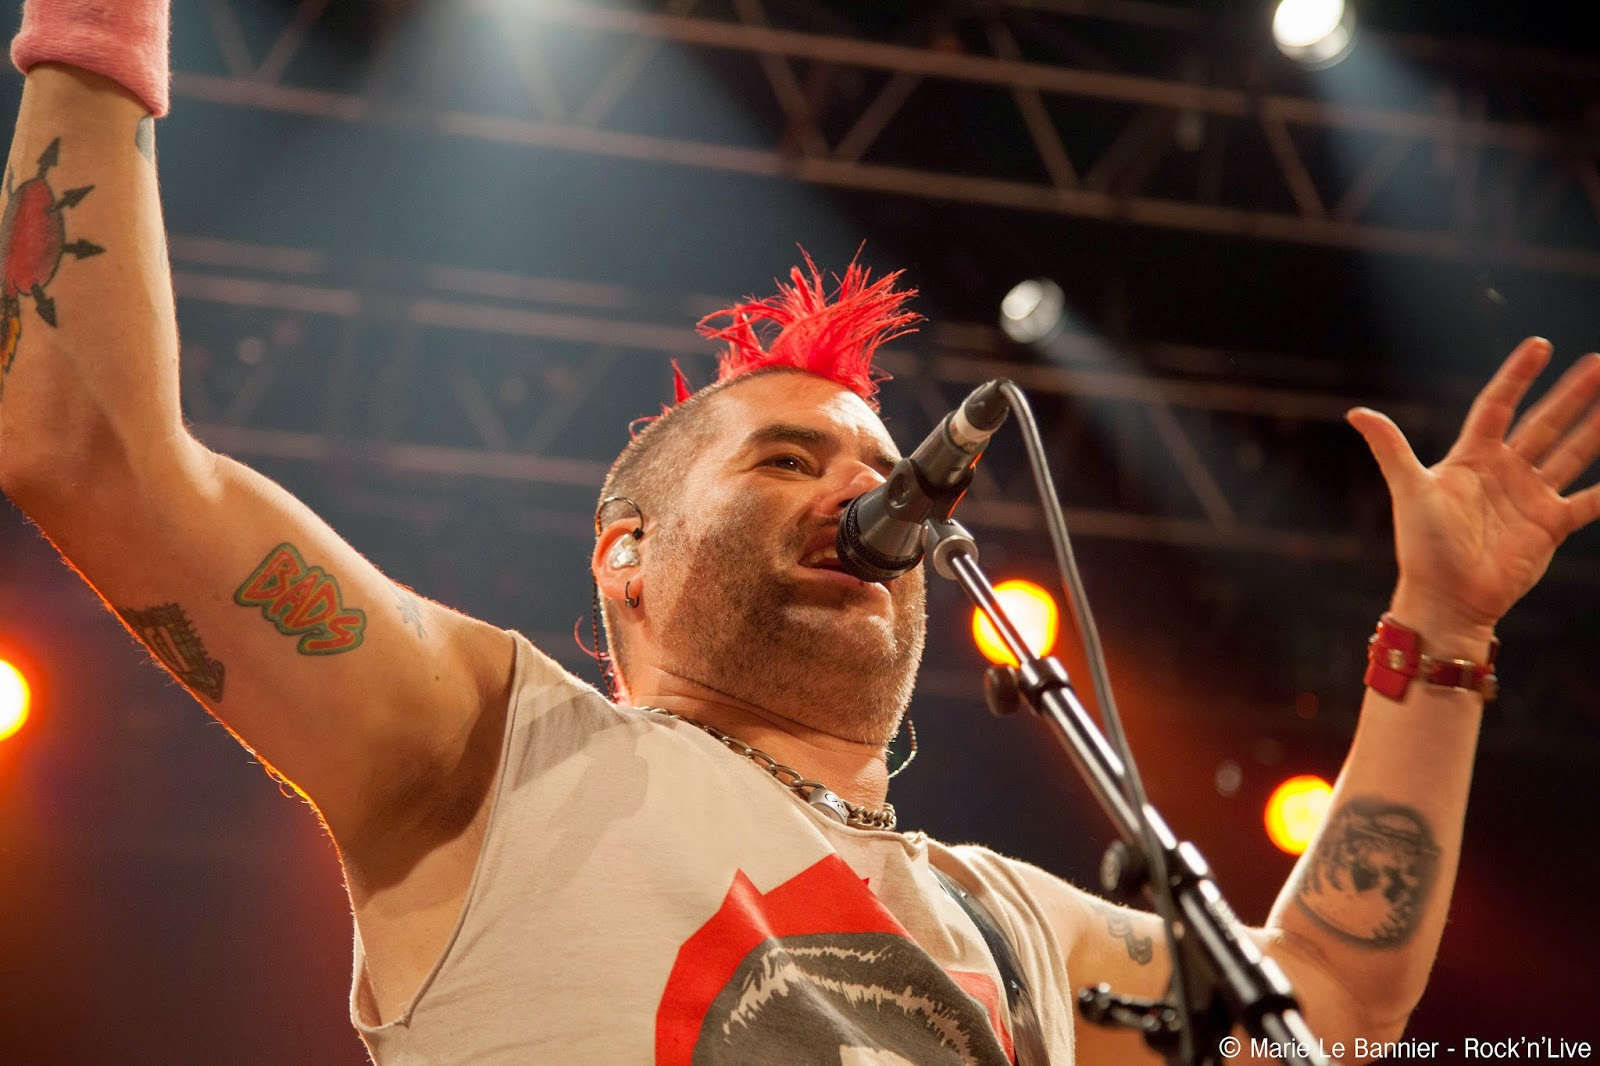 NOFX Fat Mike Trianon Paris Rock'n'Live 2014 Concert Live Punk Rock We Care Booking Marie Le Bannier Linoleum 72 Hookers 60% Leave It Alone Fat Wreck Chords